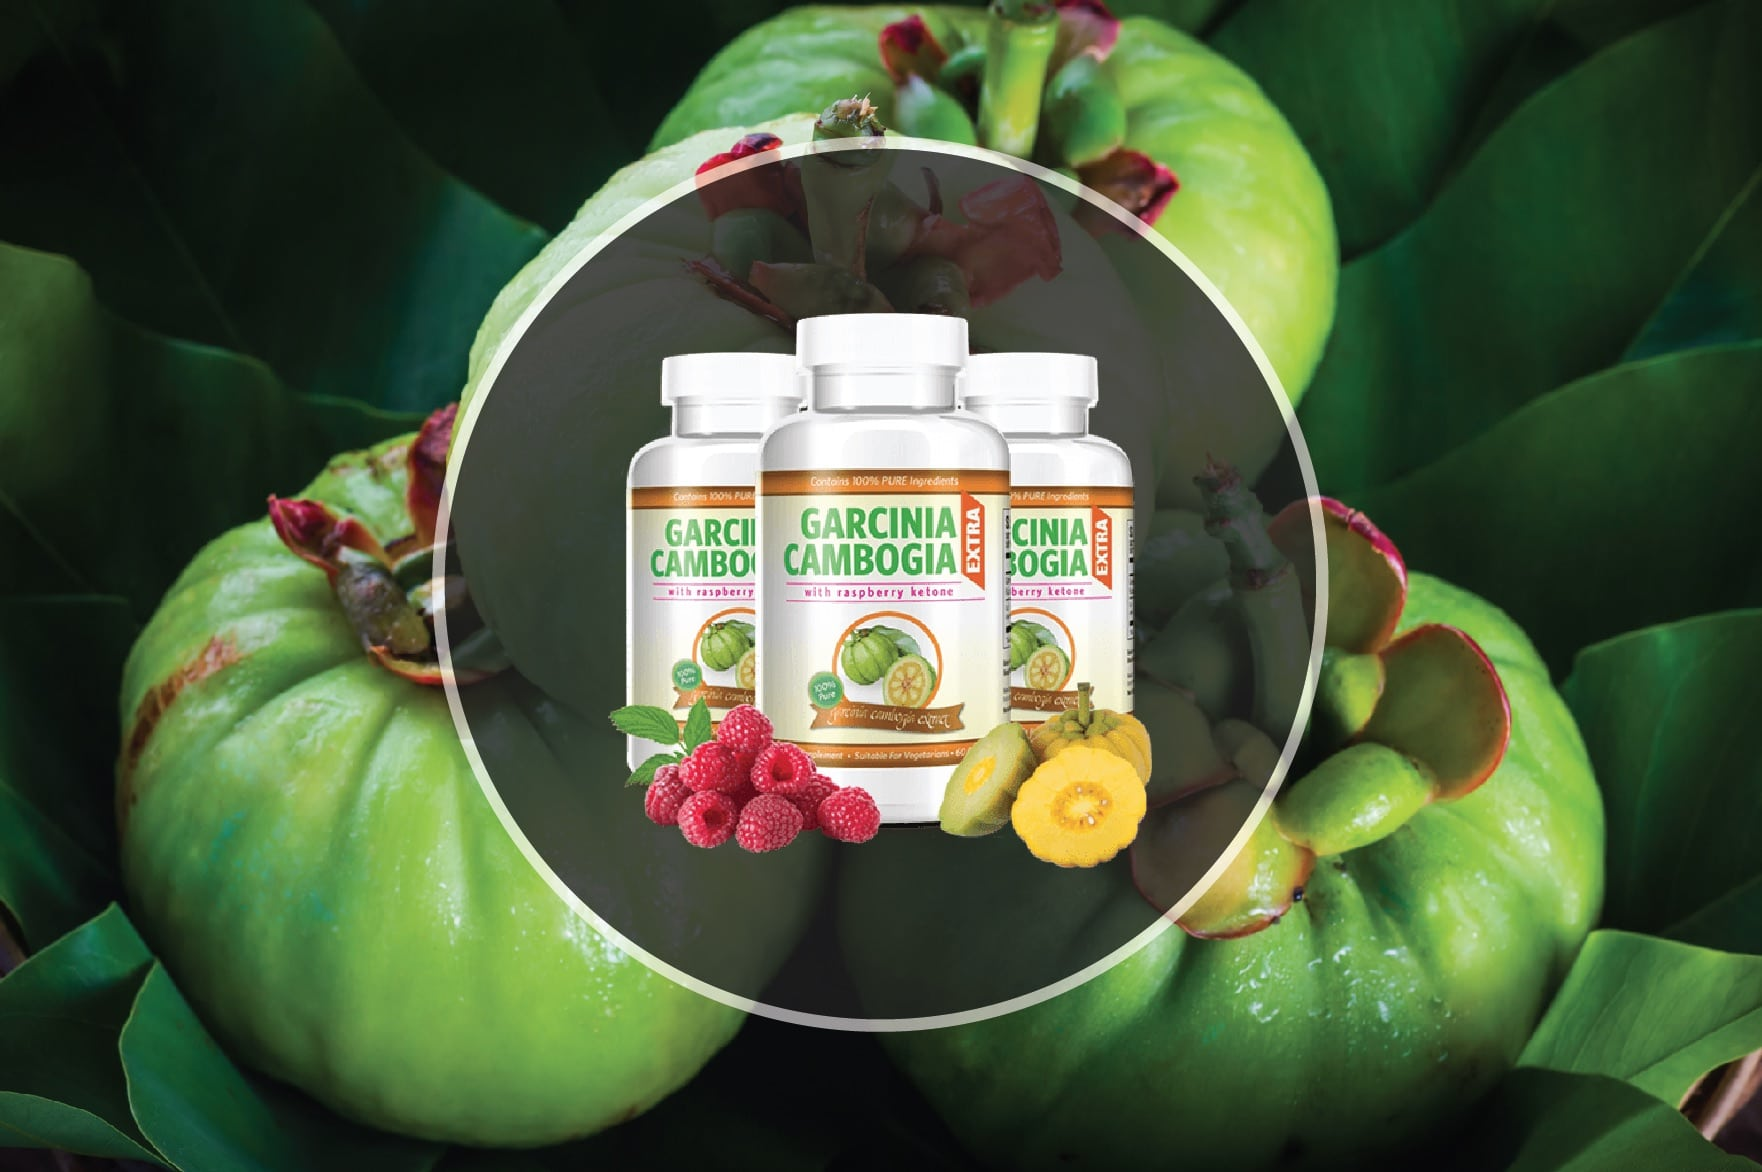 who should avoid garcinia cambogia